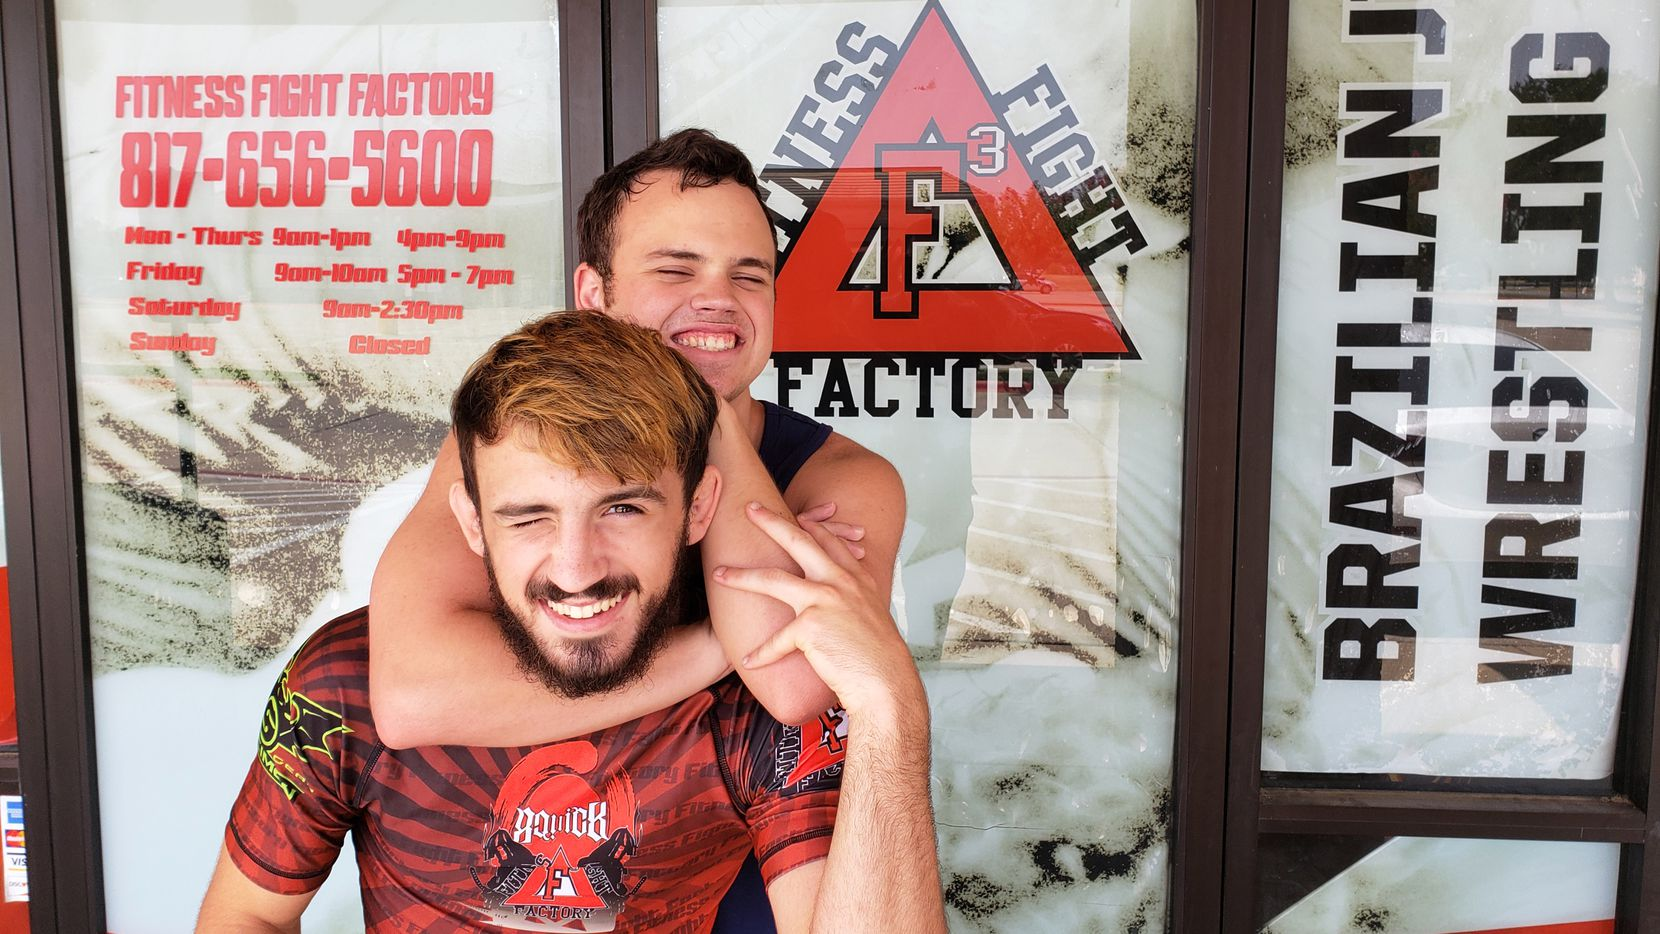 Devin and Dylan Miller at Fitness Fight Factory in North Richland Hills, Texas. Devin, a mixed martial arts fighter, holds a special needs class for his brother Dylan and others with autism. (Mark Francescutti)